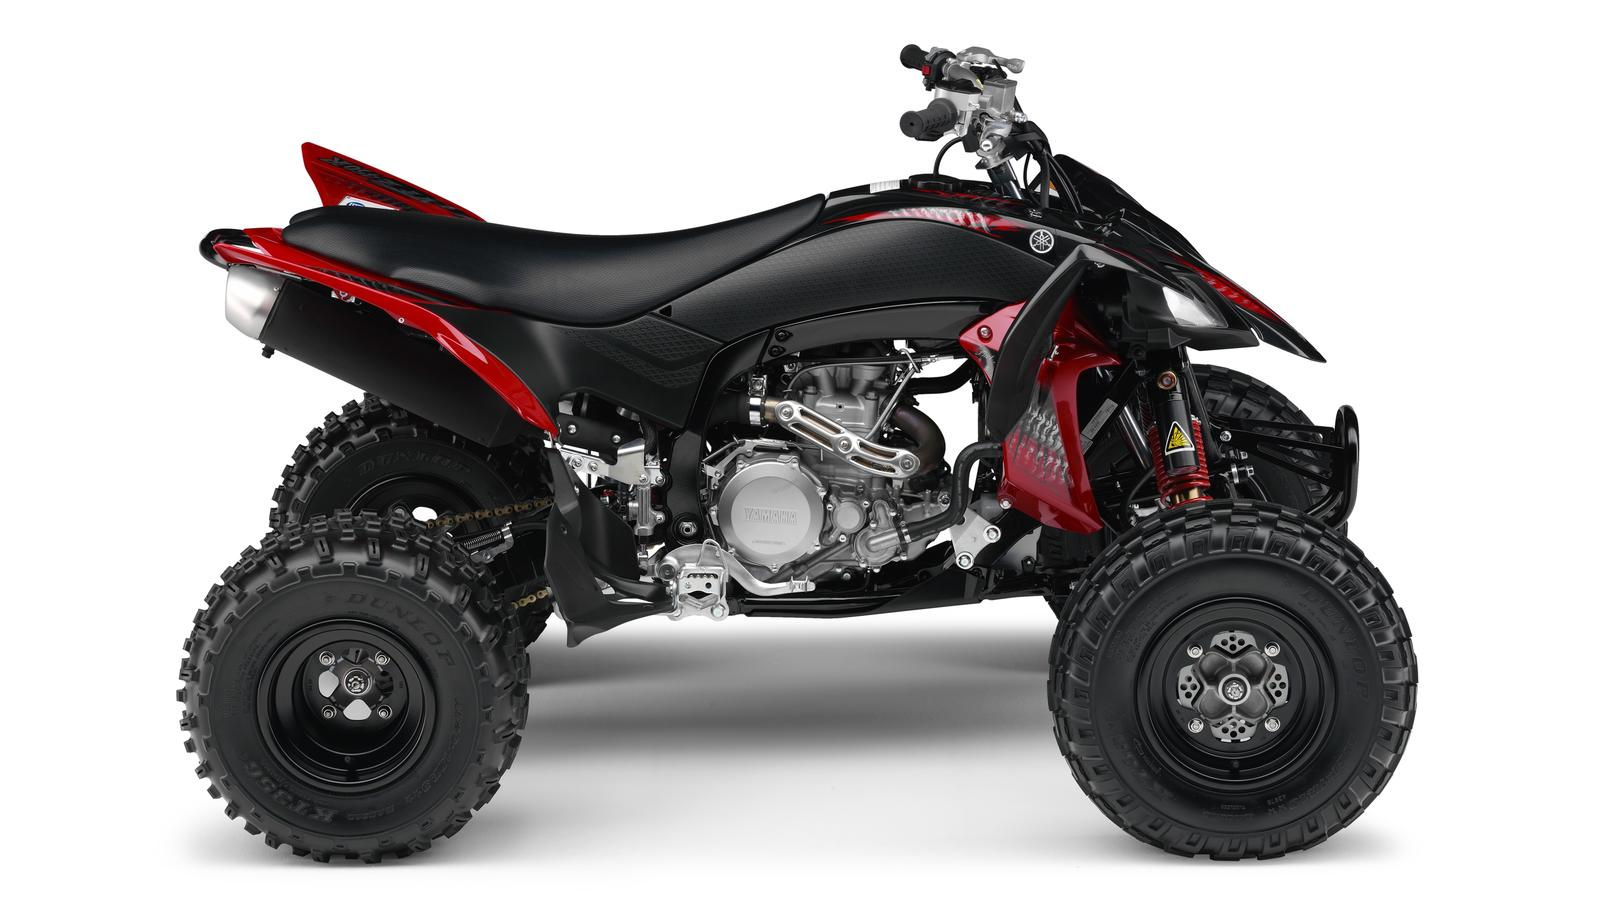 YAMAHA YFZ 450 R 2011 photo 2